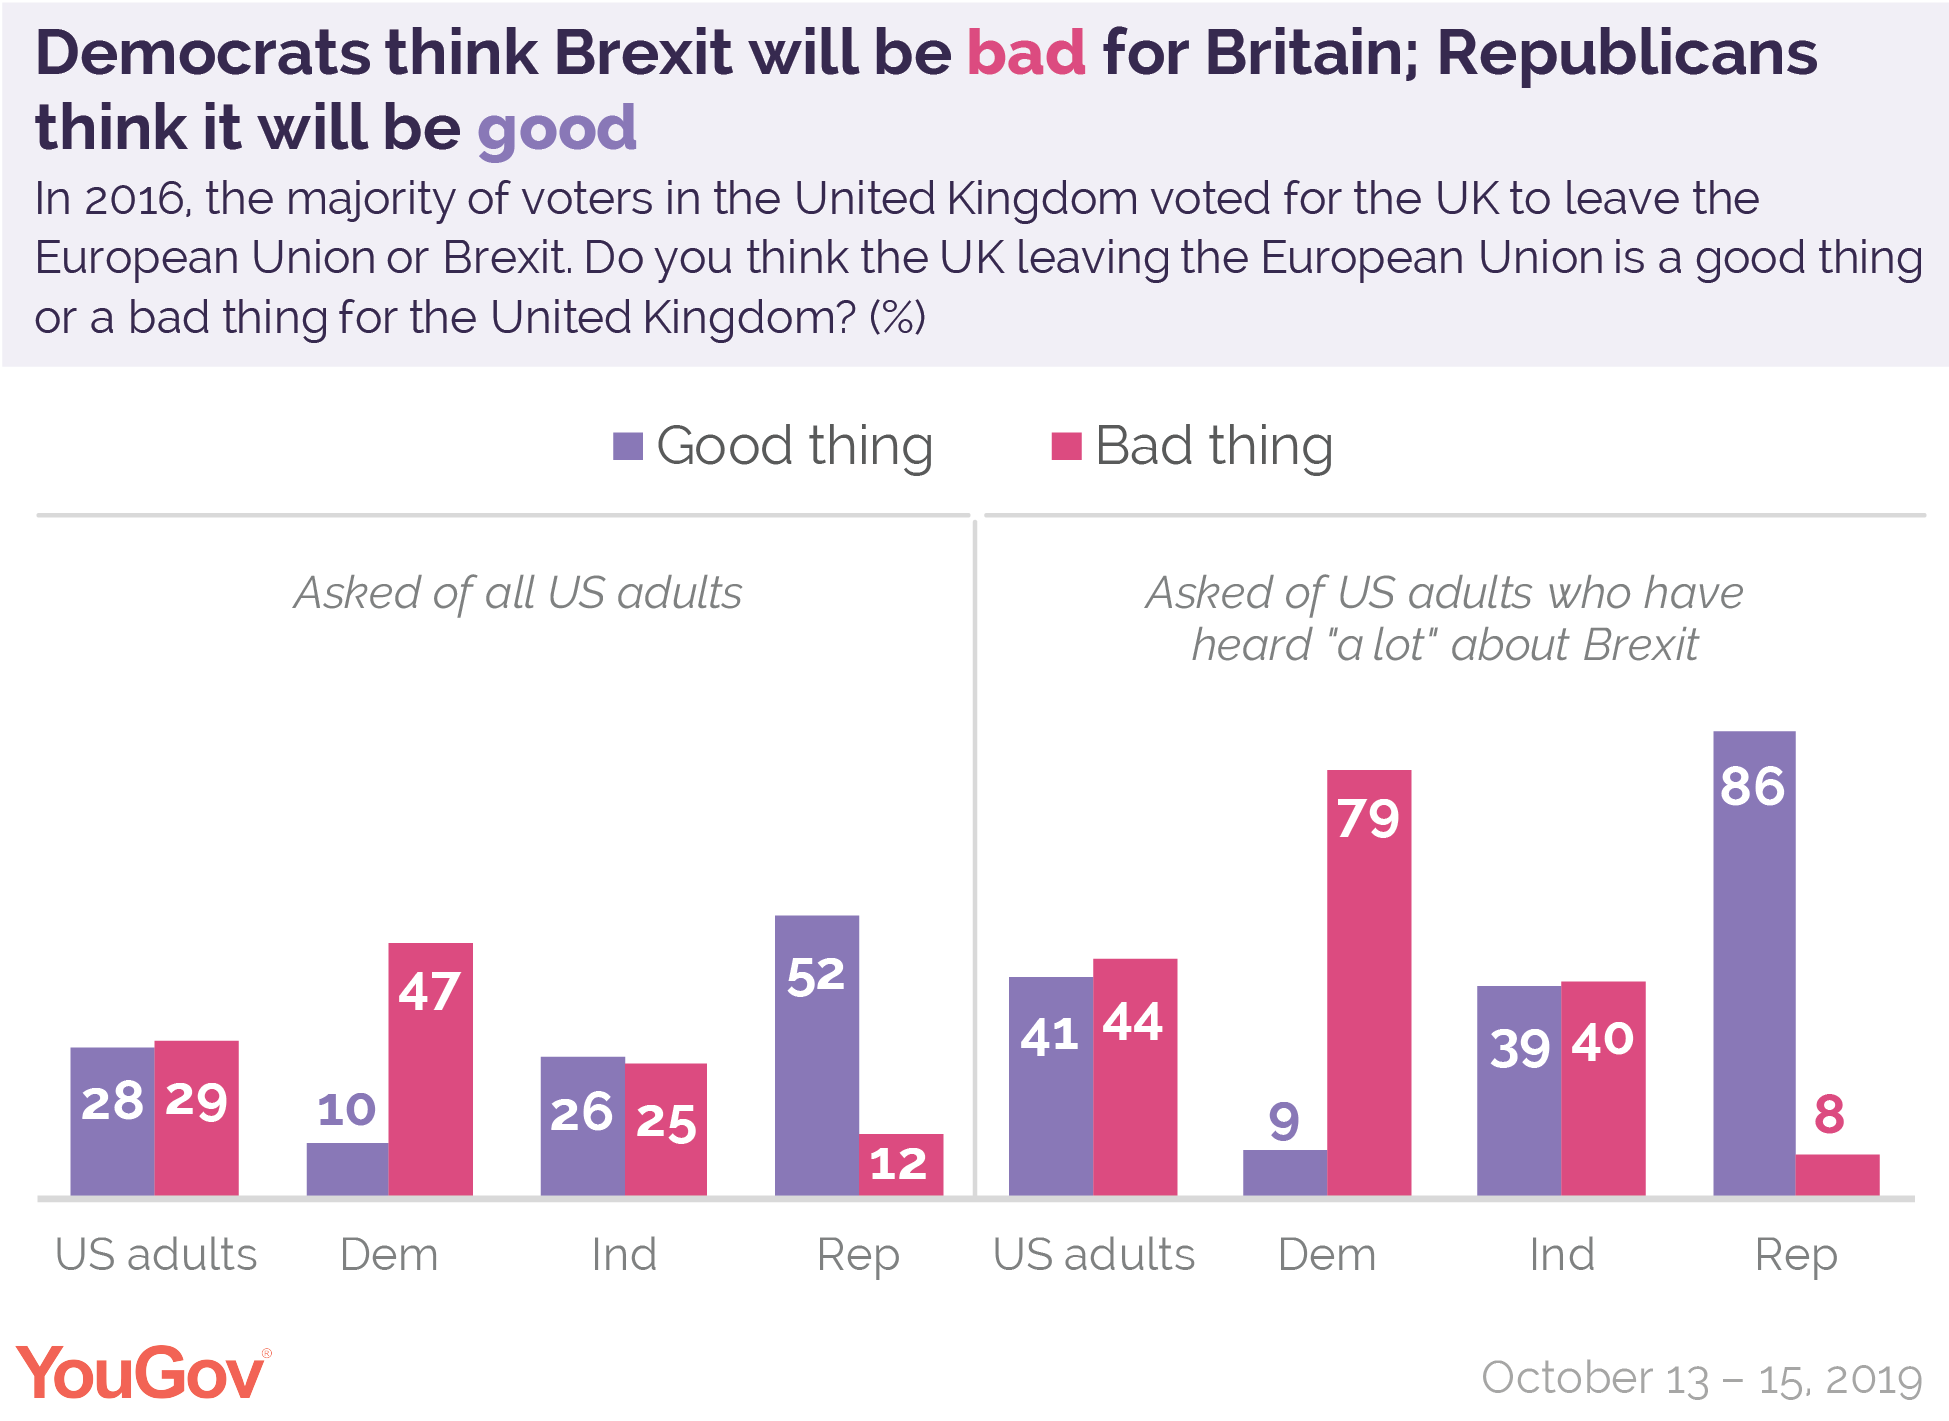 Democrats think Brexit will be bad for Britain; Republicans think it will be good